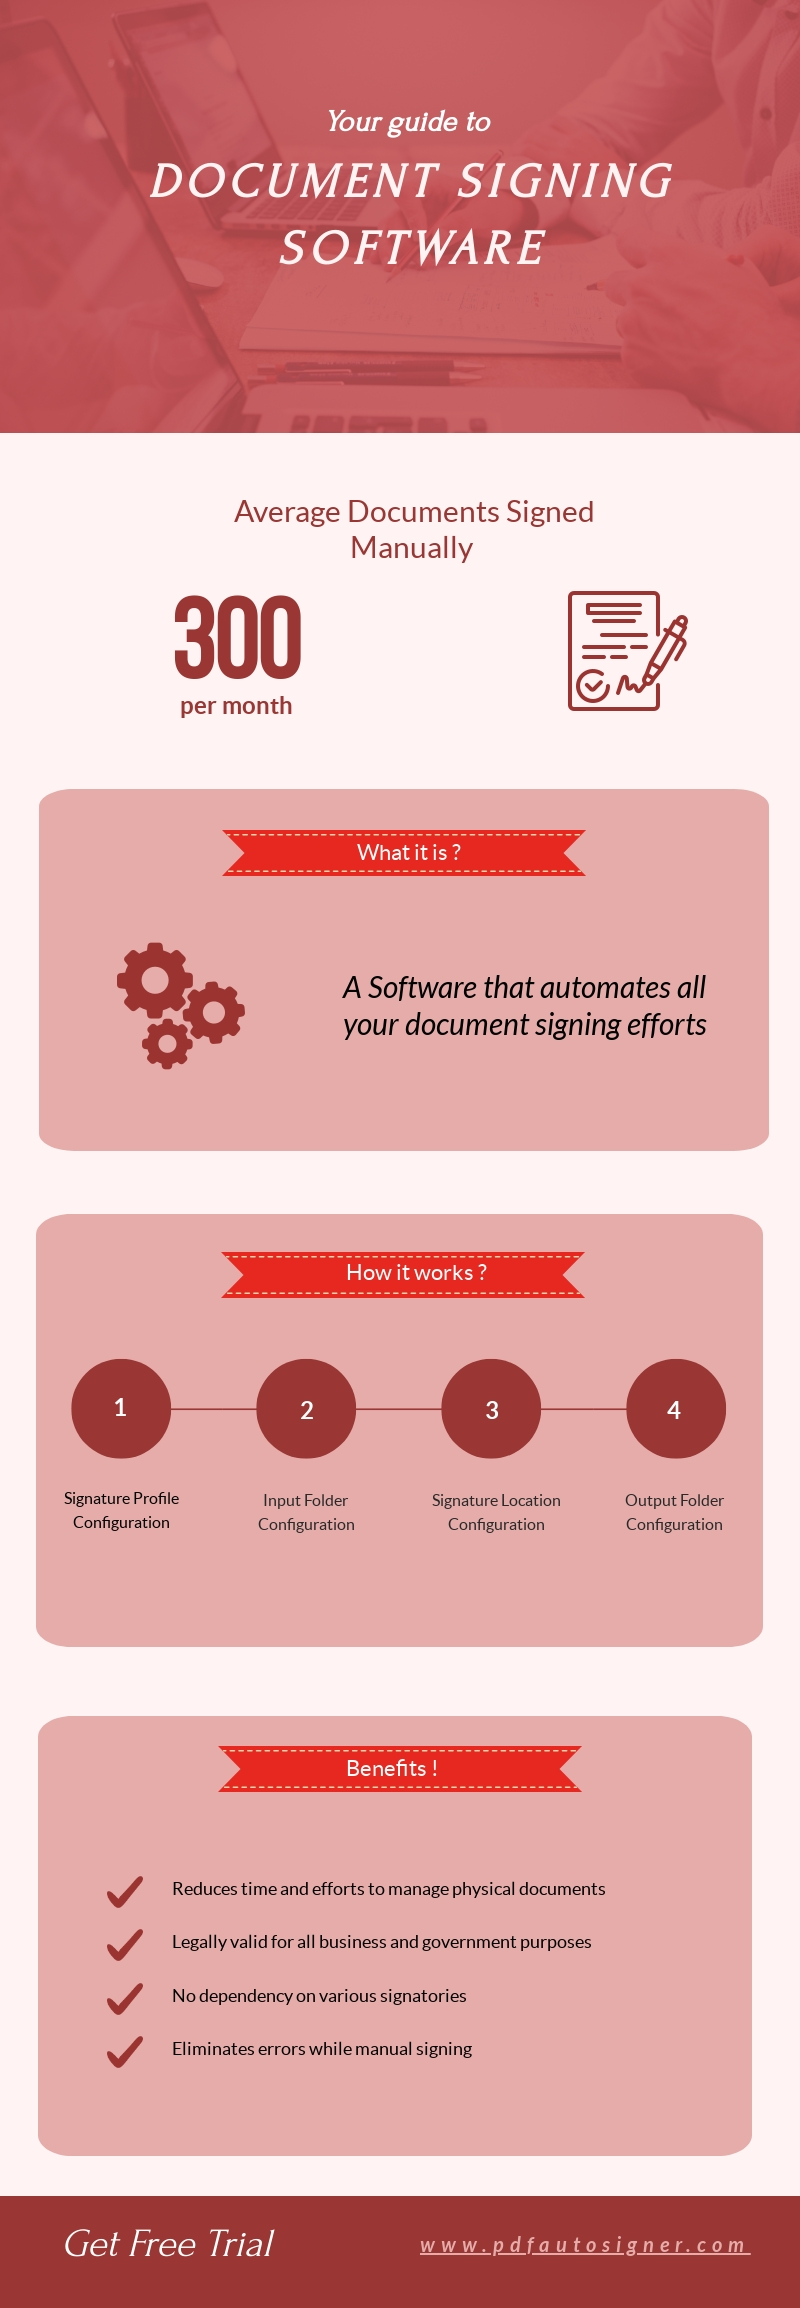 Document_Signing_Software